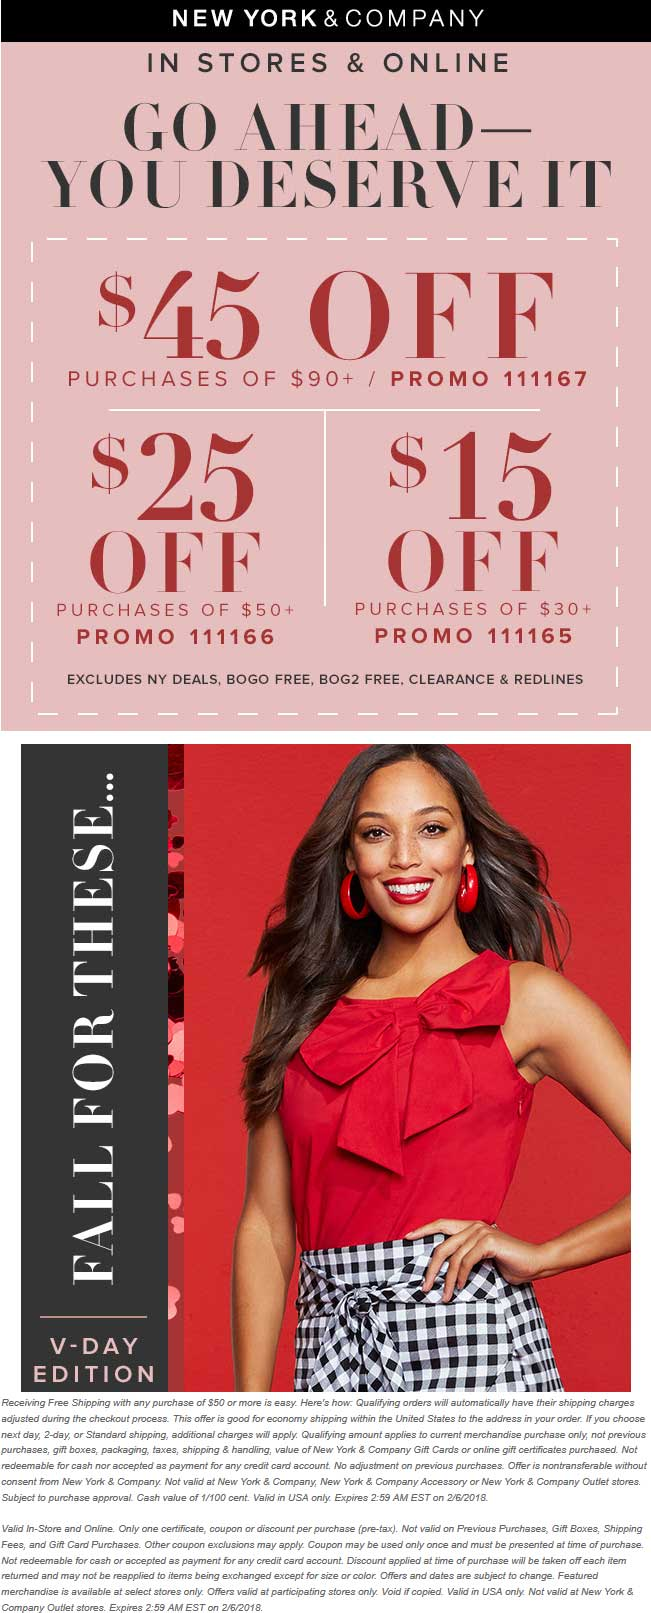 New York & Company Coupon March 2019 $15 off $30 & more today at New York & Company, or online via promo code 111165